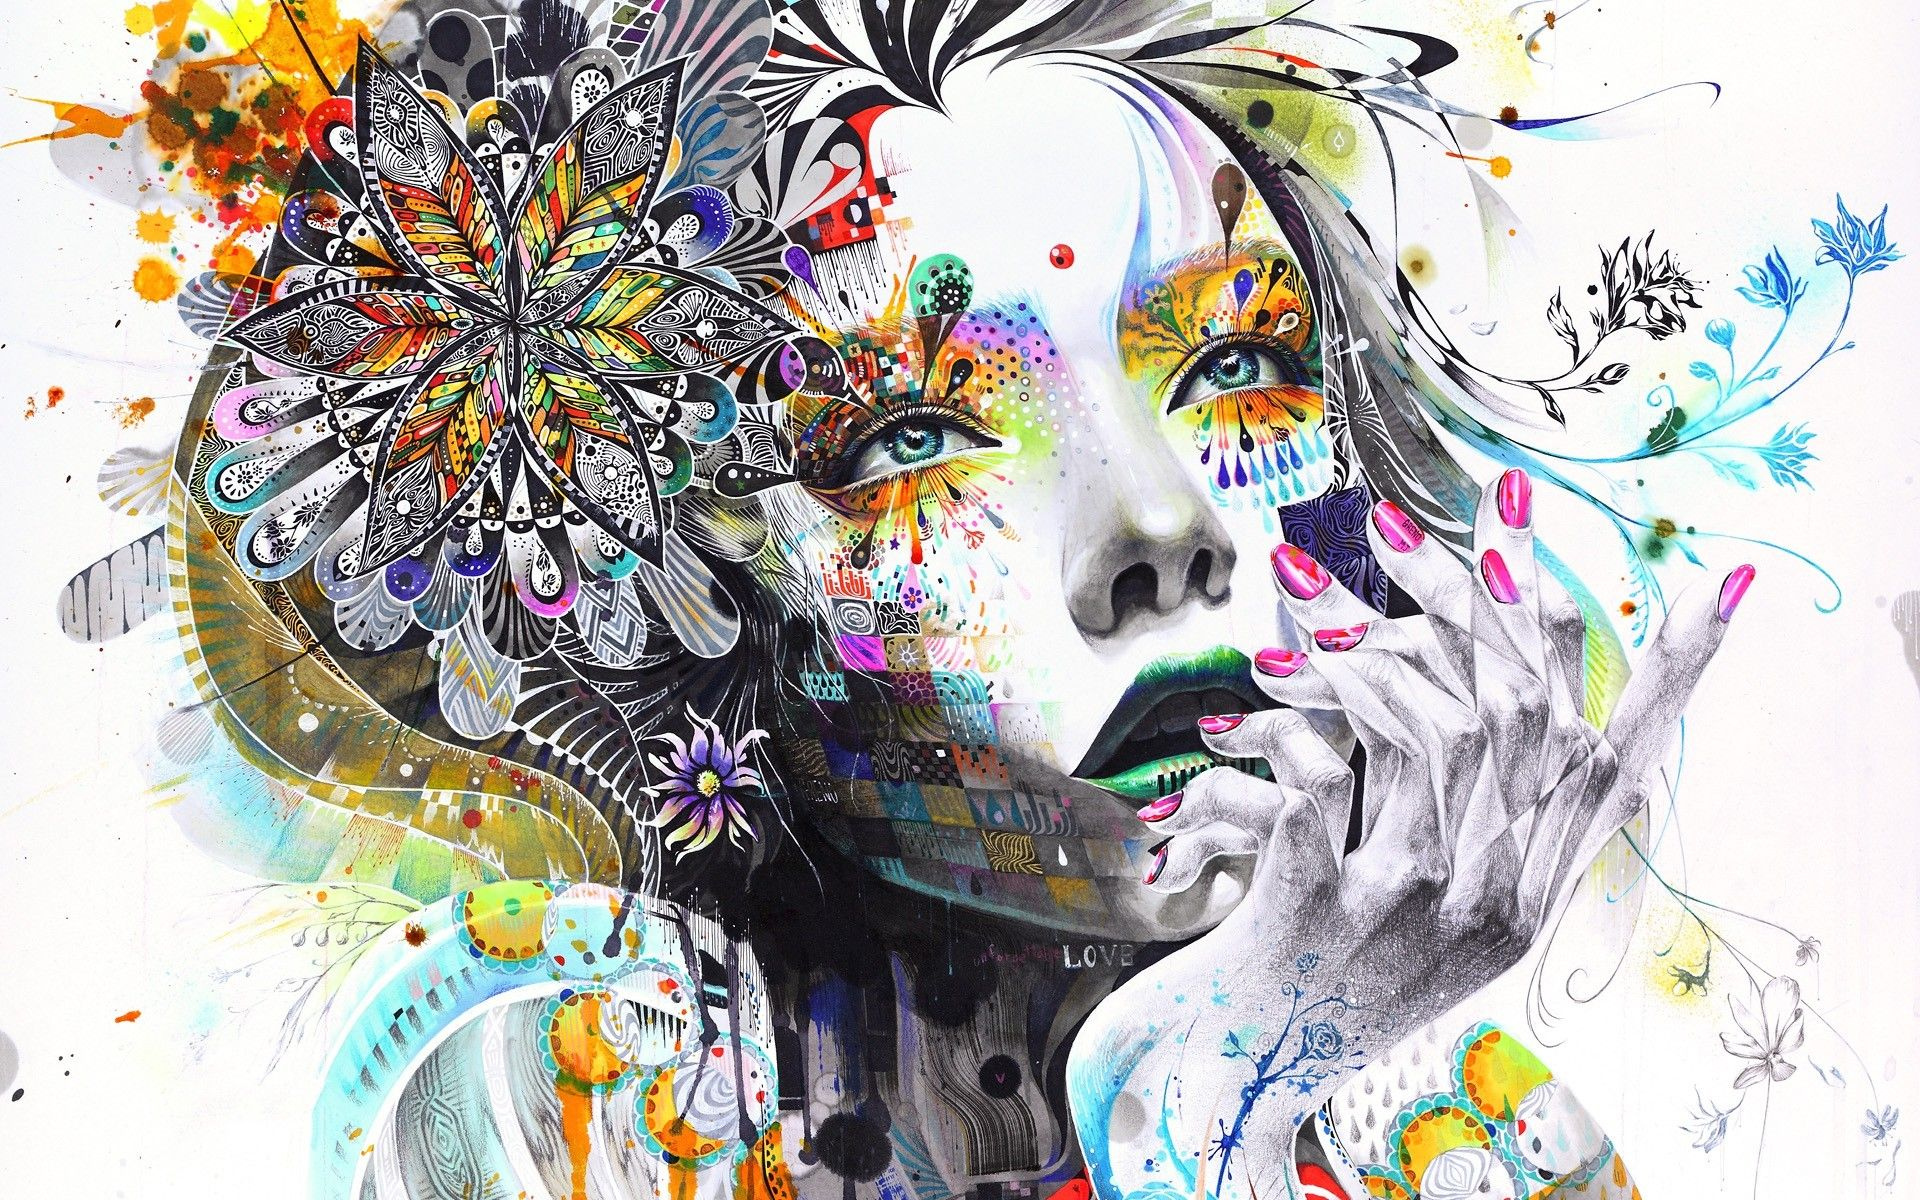 Abstract Girl Wallpapers Top Free Abstract Girl Backgrounds